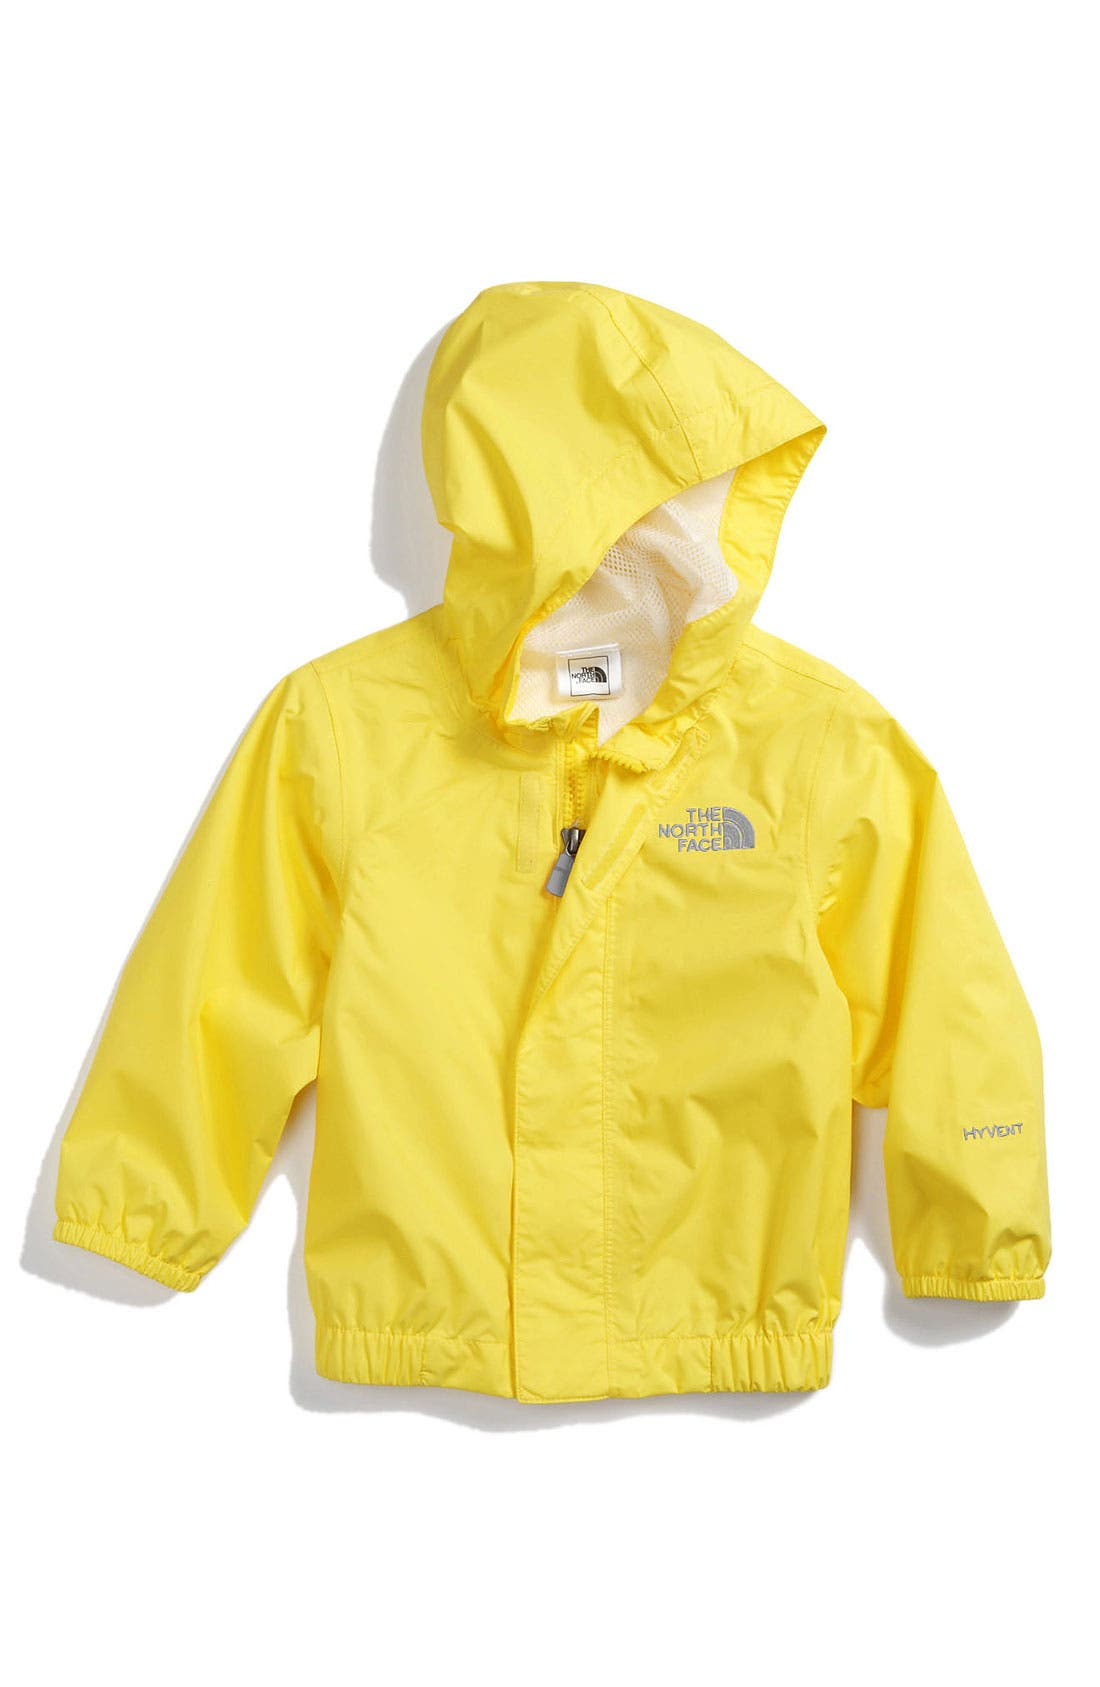 Alternate Image 1 Selected - The North Face 'Tailout' Rain Jacket (Infant)